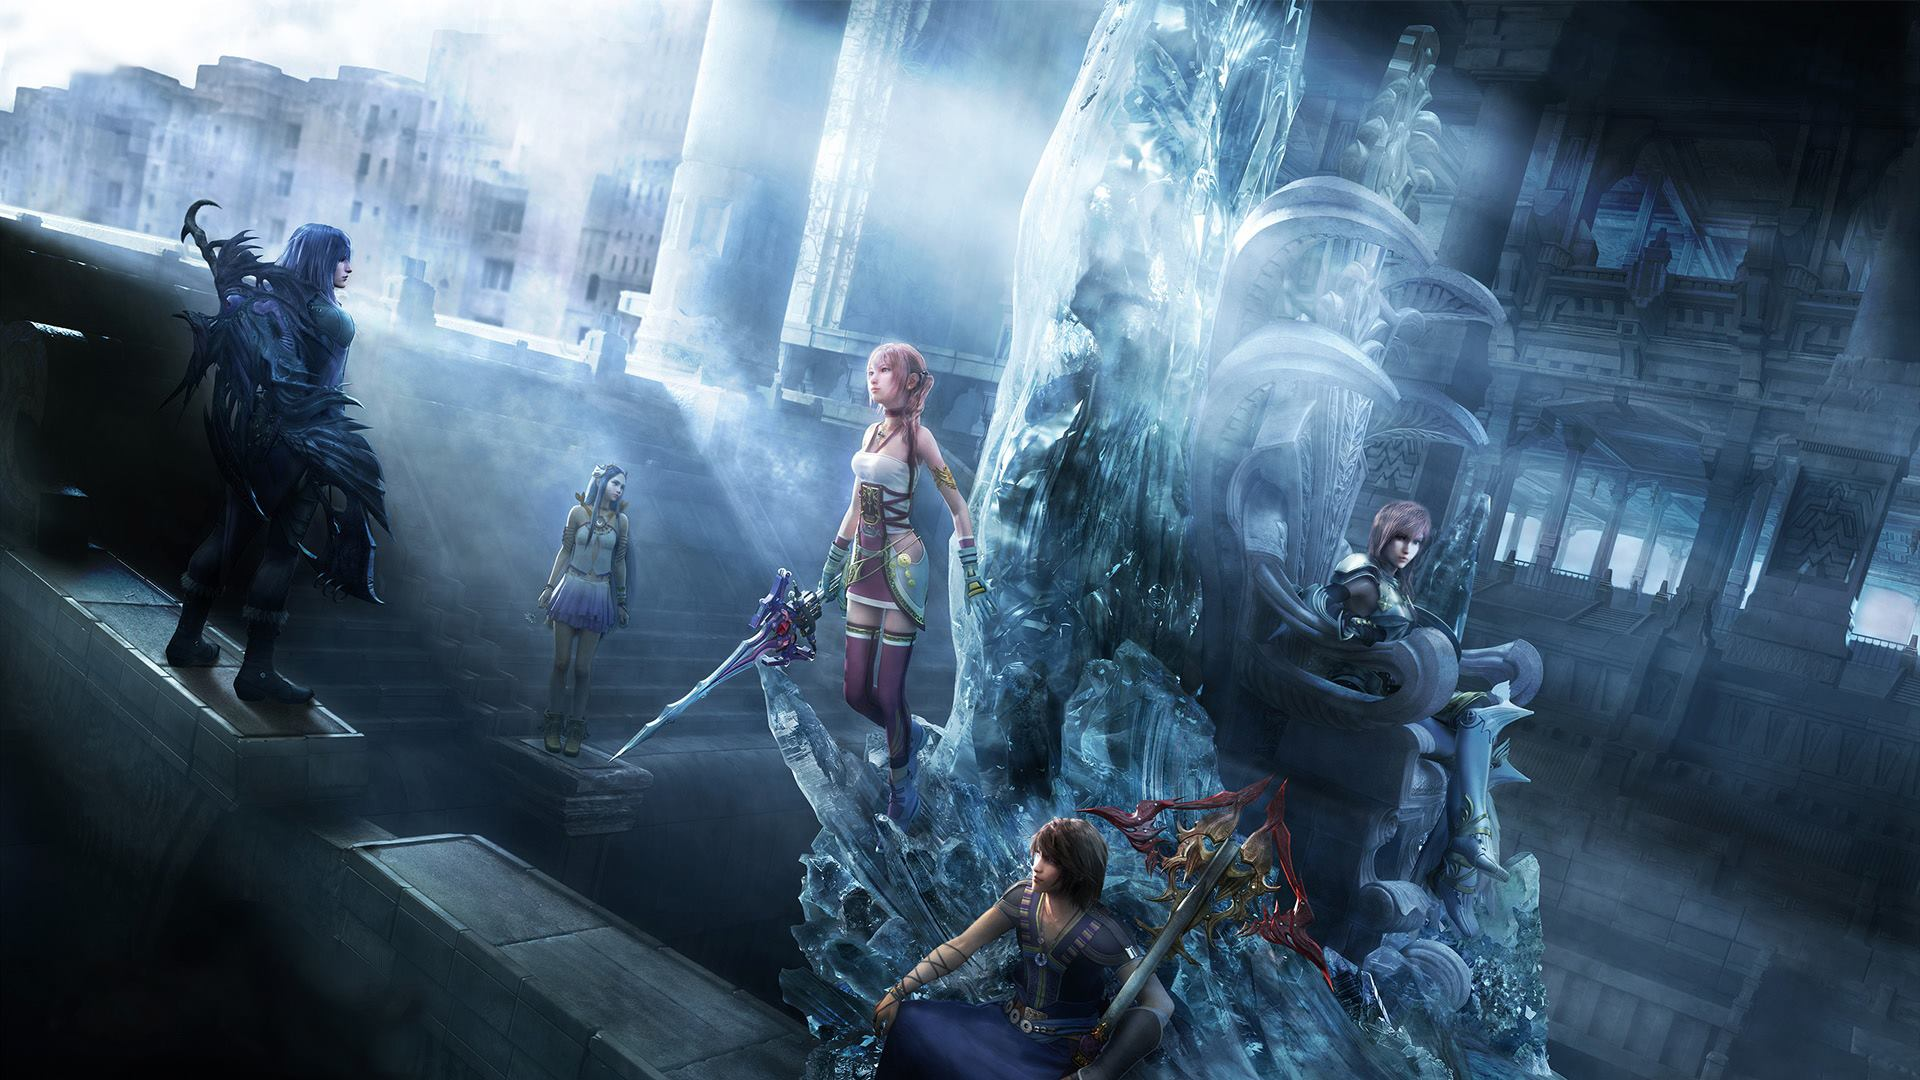 final fantasy wallpaper Final Fantasy Lightning And Serah 1920x1080